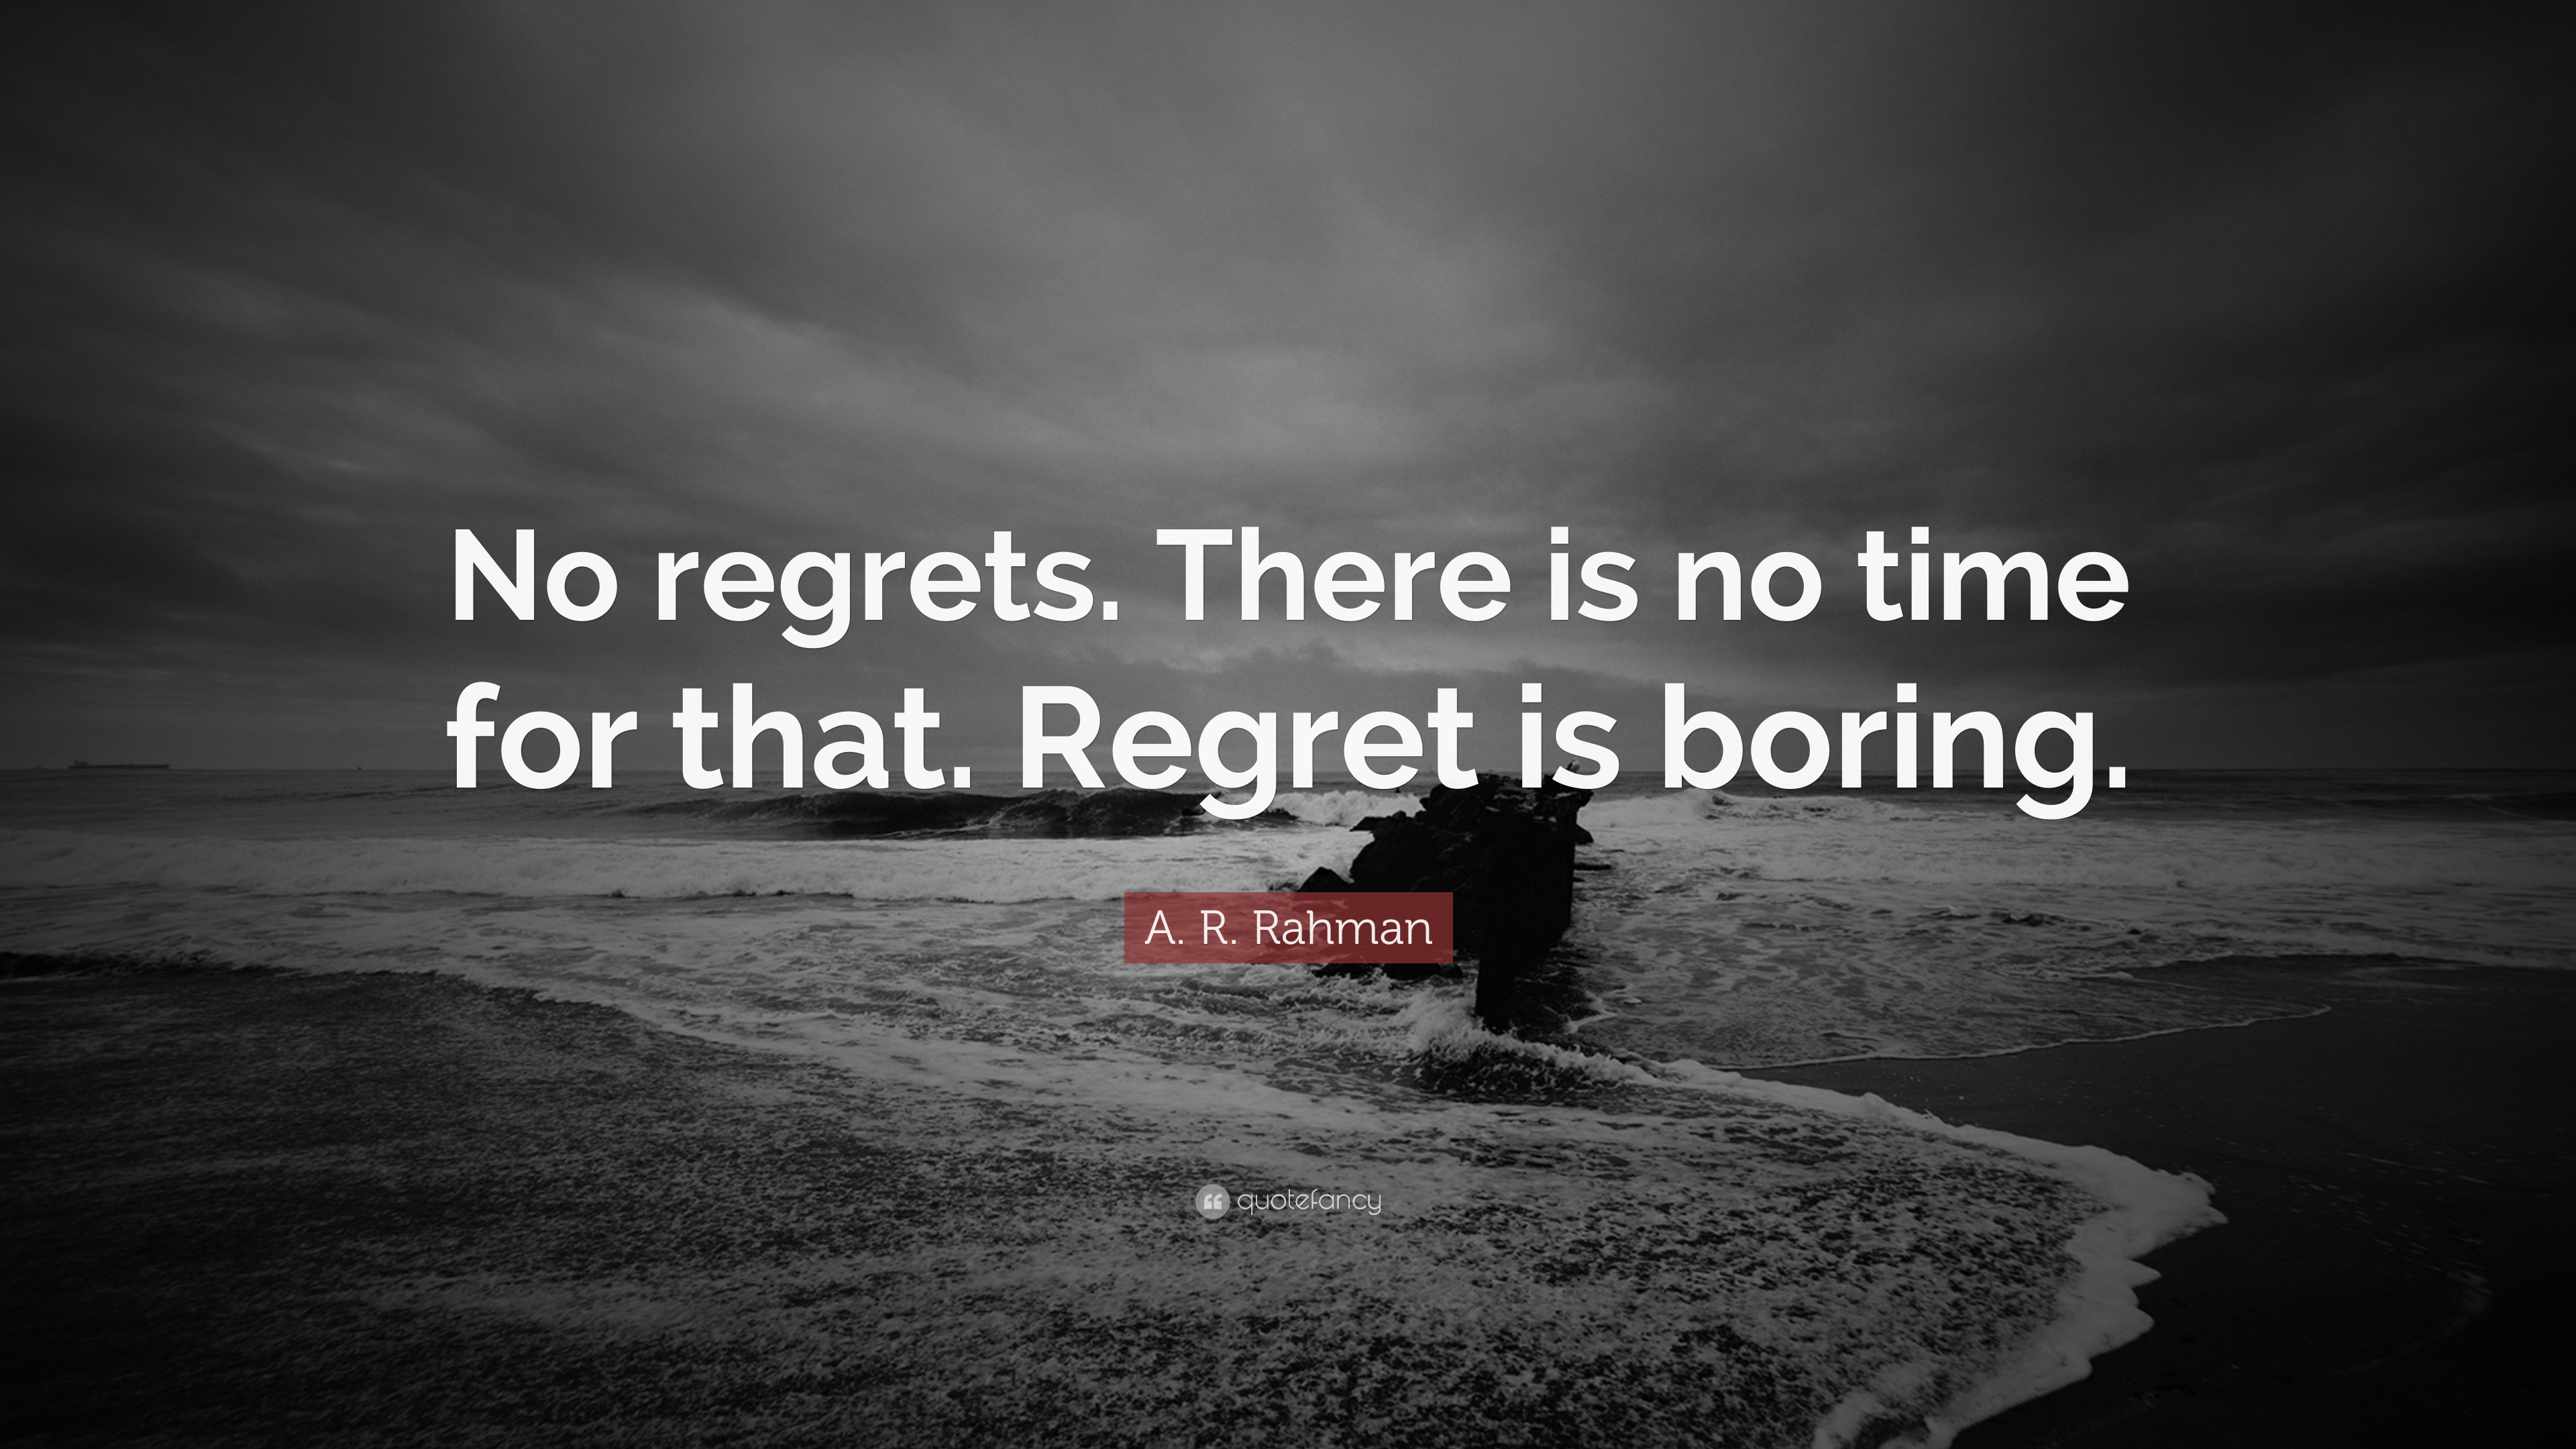 No Time for Regrets